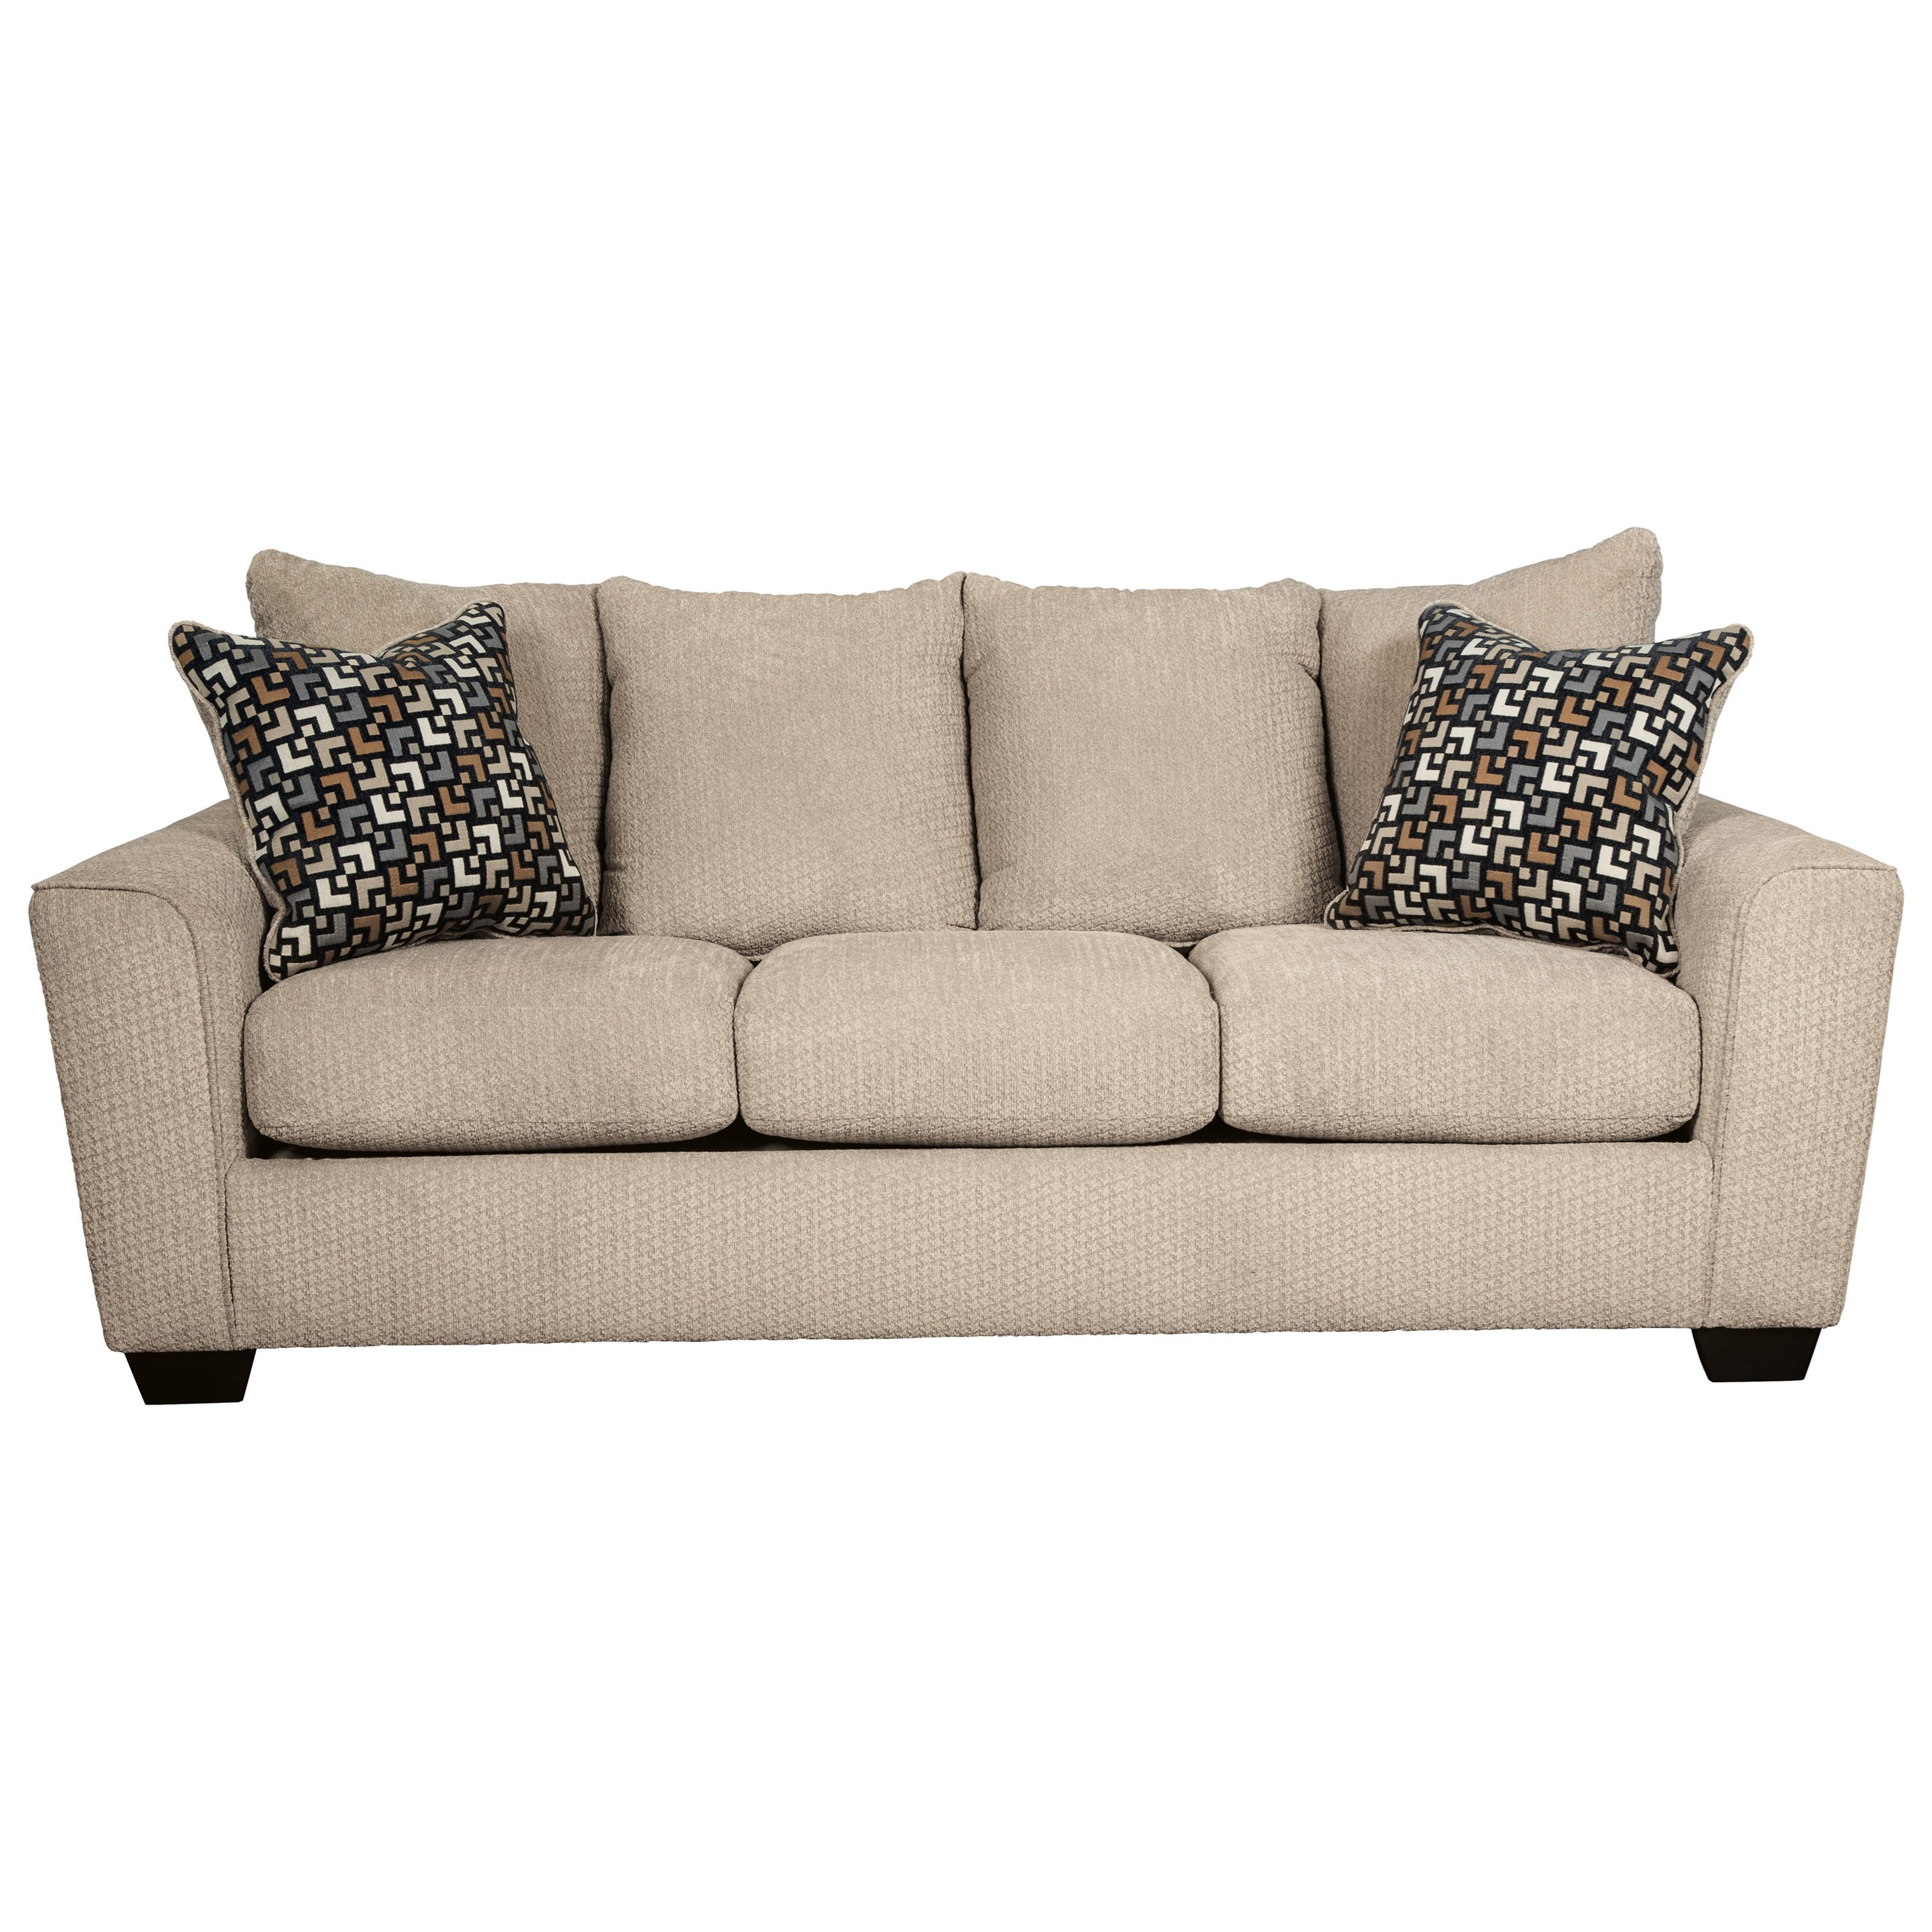 Benchcraft wixon sofa with rounded track arms wayside for Wayside furniture